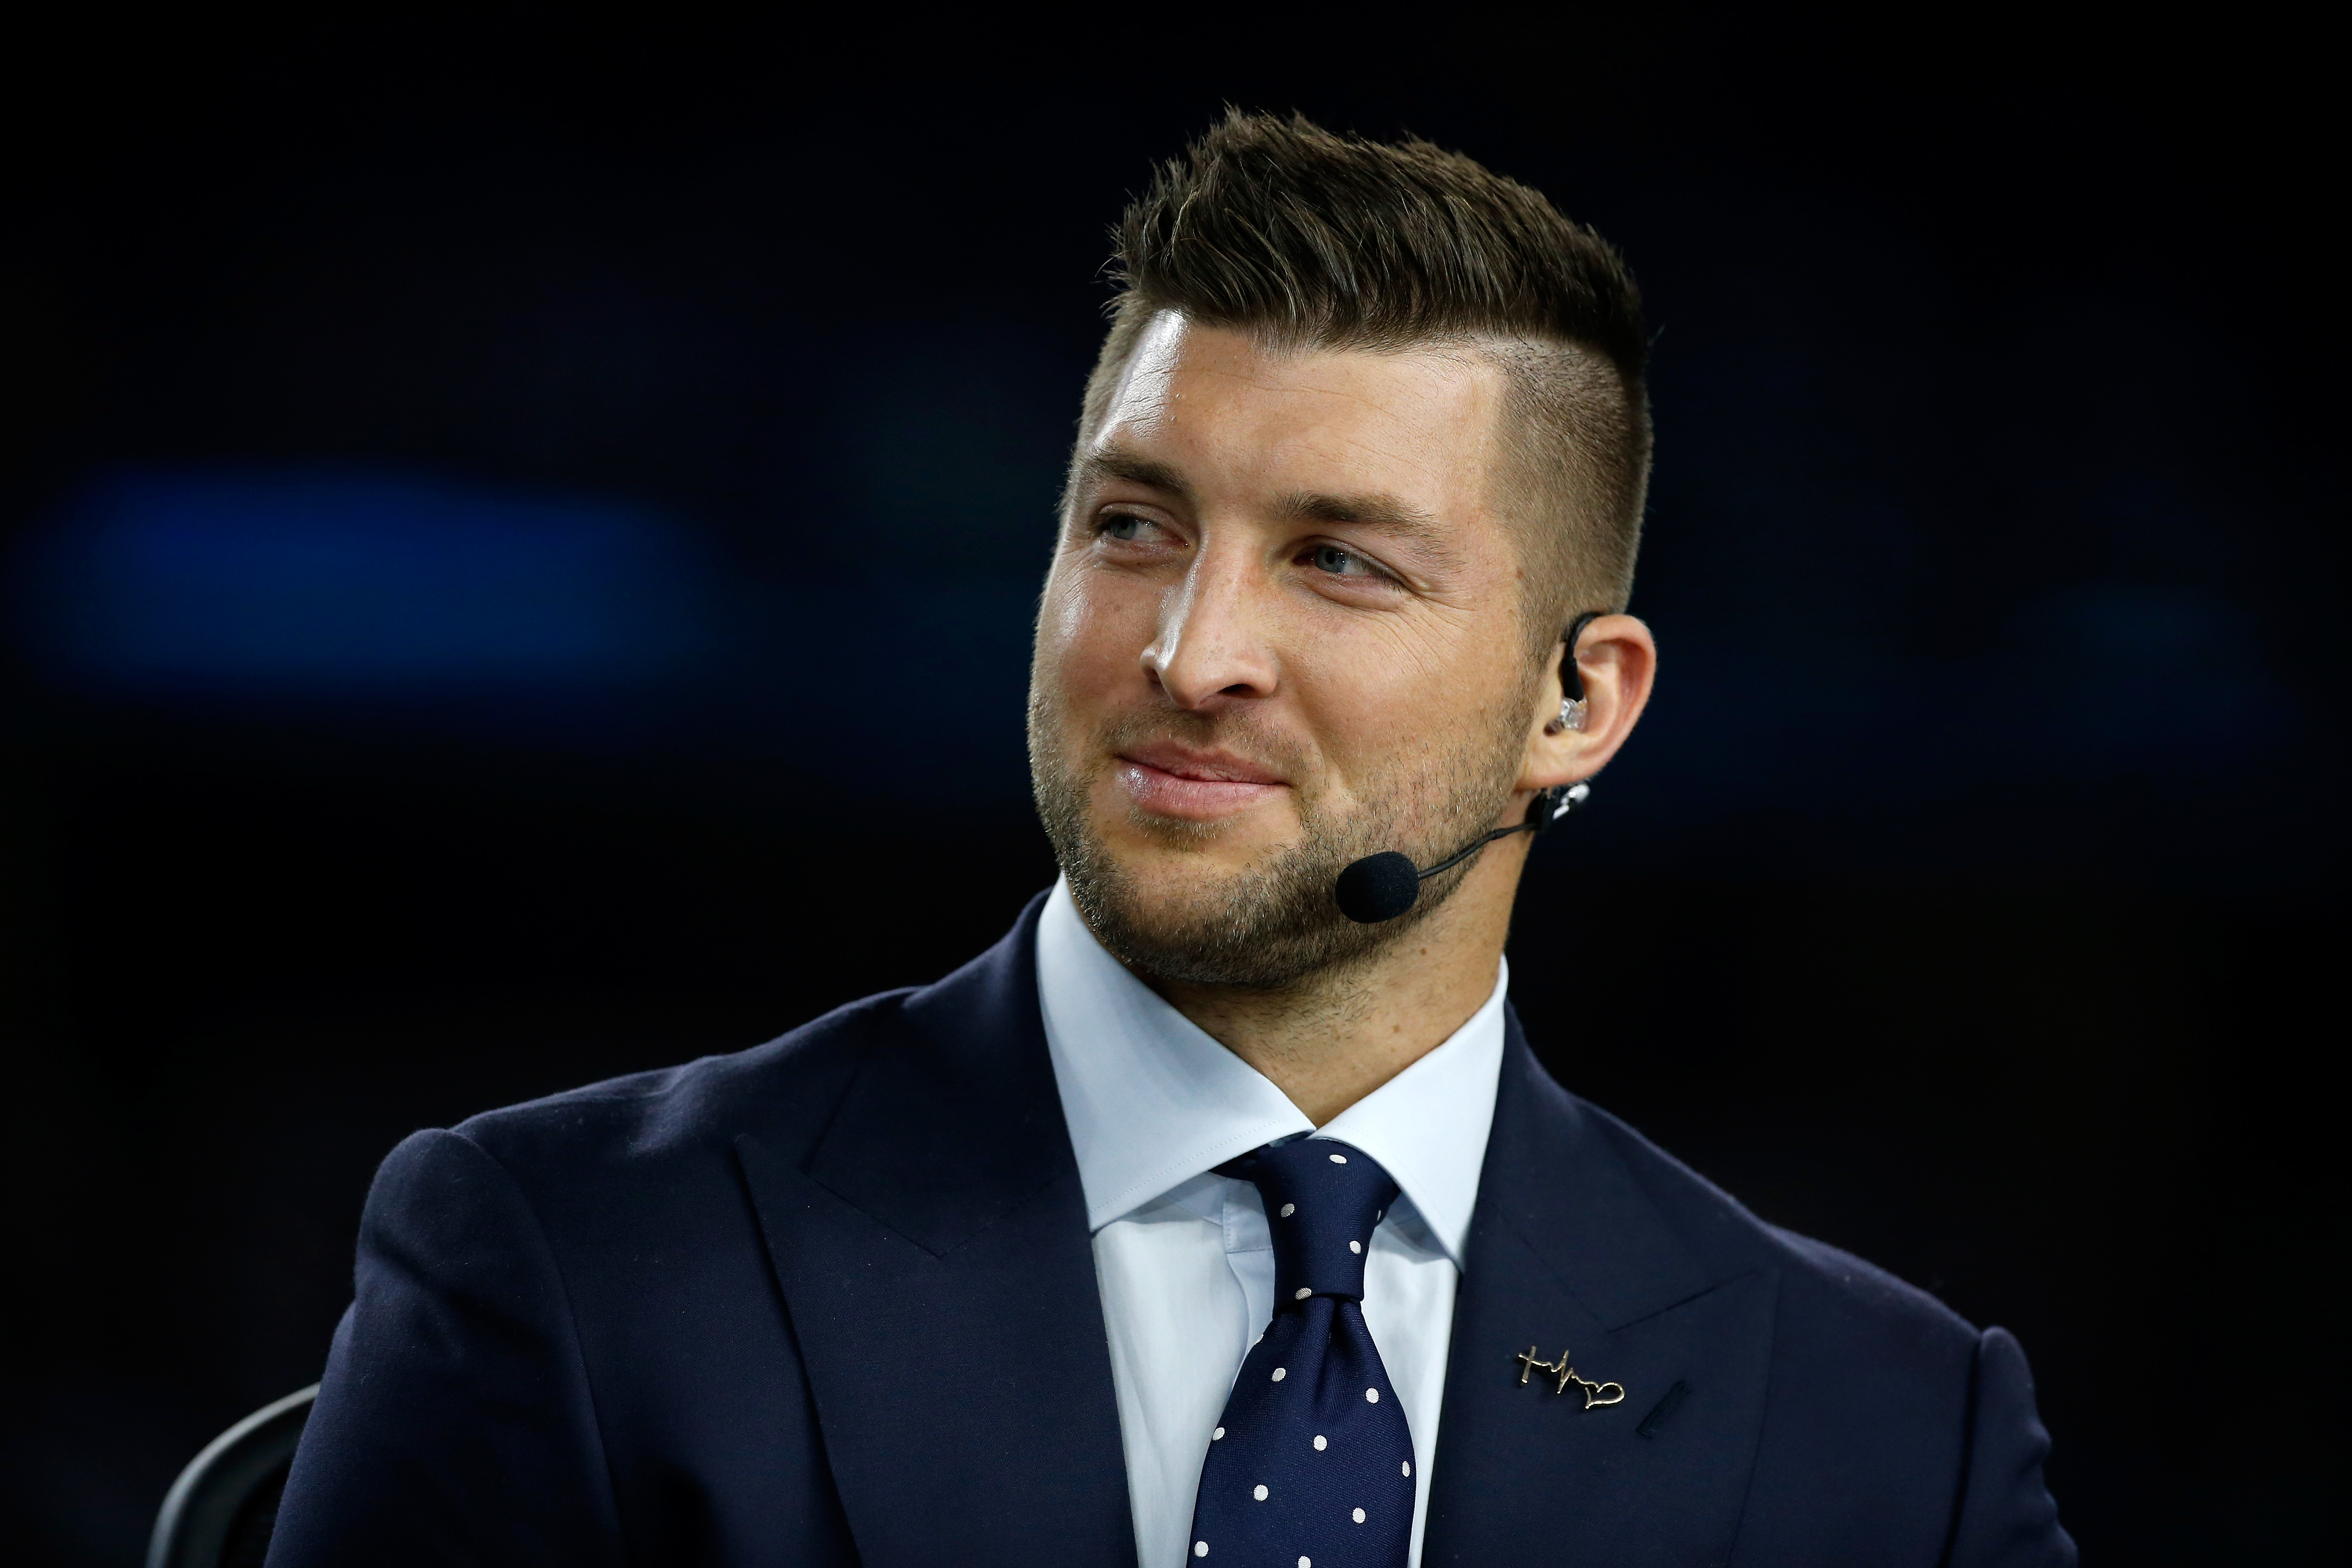 ARLINGTON, TX - DECEMBER 31:  Broadcaster Tim Tebow of the SEC Network speaks on air before the Goodyear Cotton Bowl at AT&T Stadium on December 31, 2015 in Arlington, Texas.  (Photo by Scott Halleran/Getty Images)